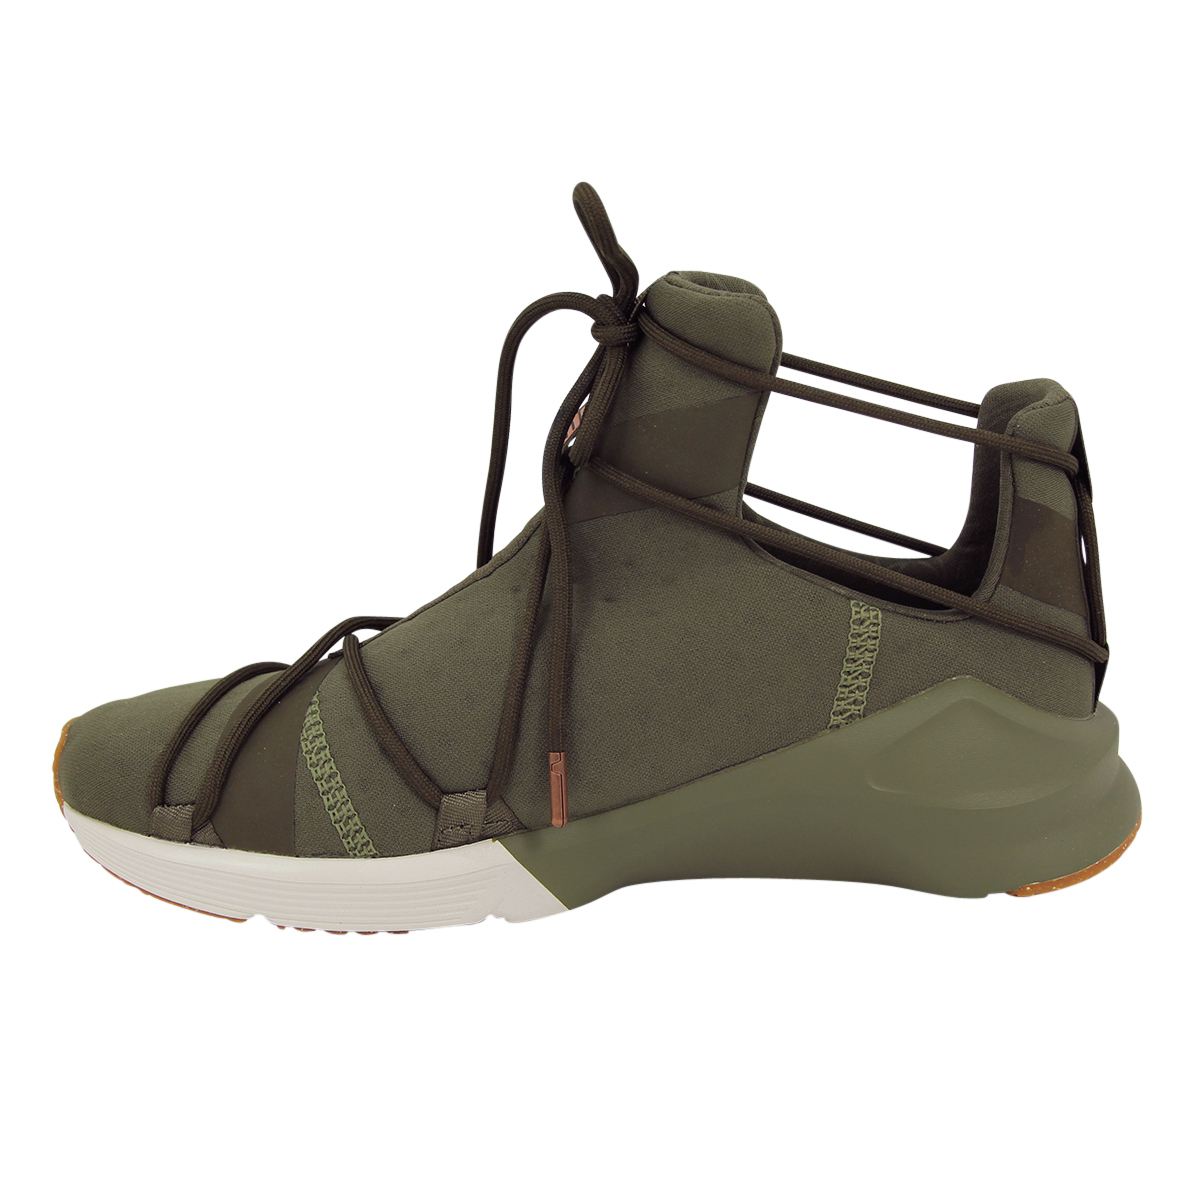 02090c3db62 PUMA Ladies Fierce Rope VR High Shoes Trainers Women Green Olive 7. About  this product. Picture 1 of 12  Picture 2 of 12  Picture 3 of 12 ...